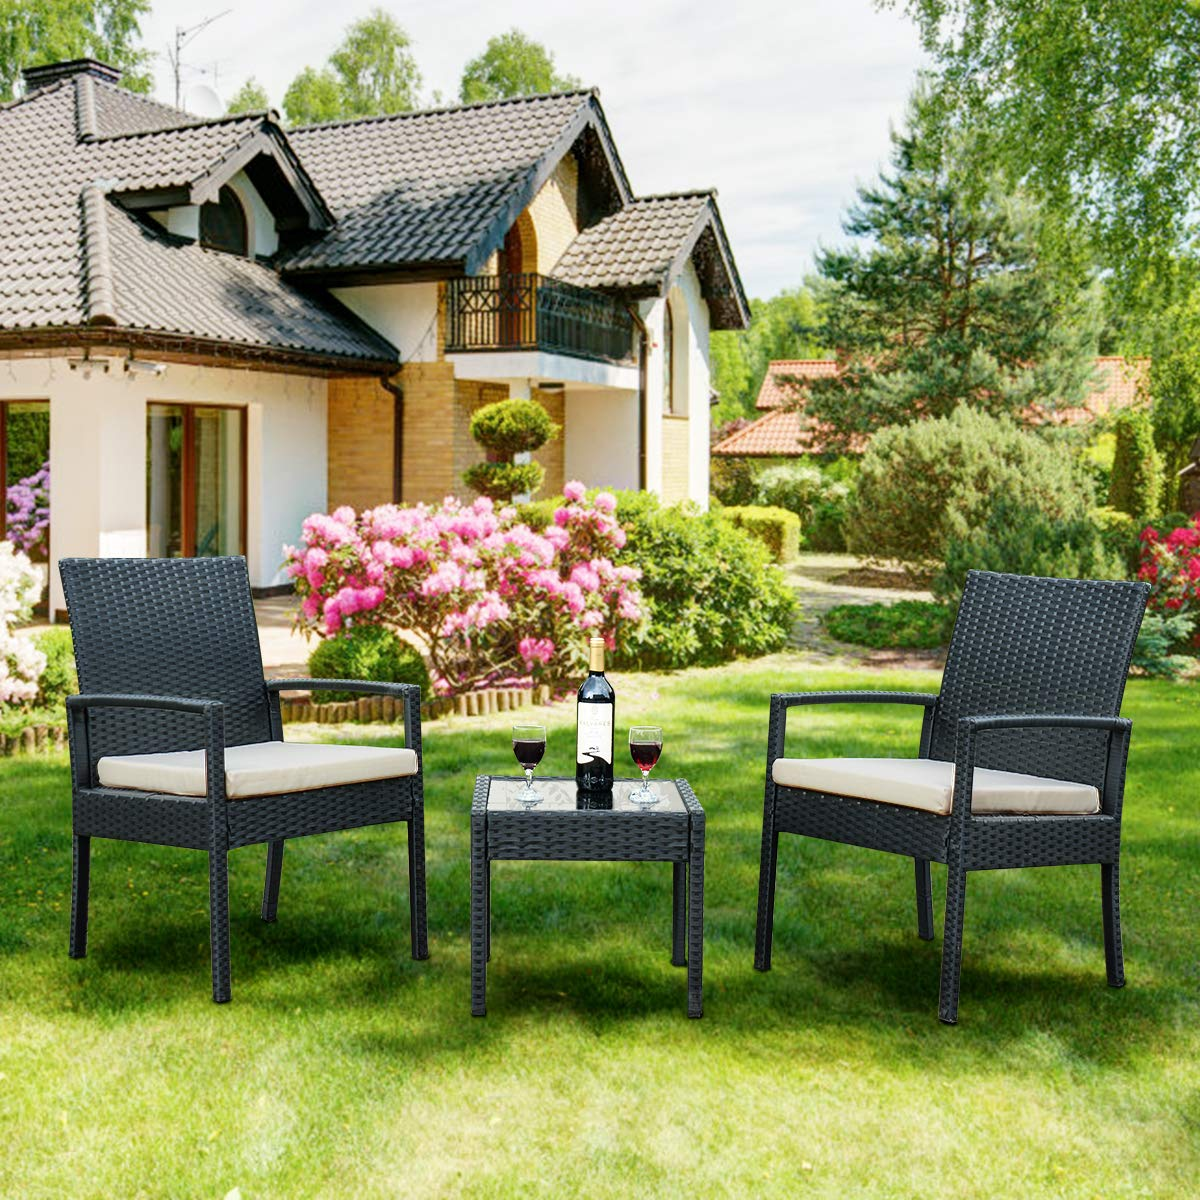 Rattan outdoor patio conversation set with 2 cushioned chairs end table backyard garden lawn chat set chill time modern outdoor furniture black